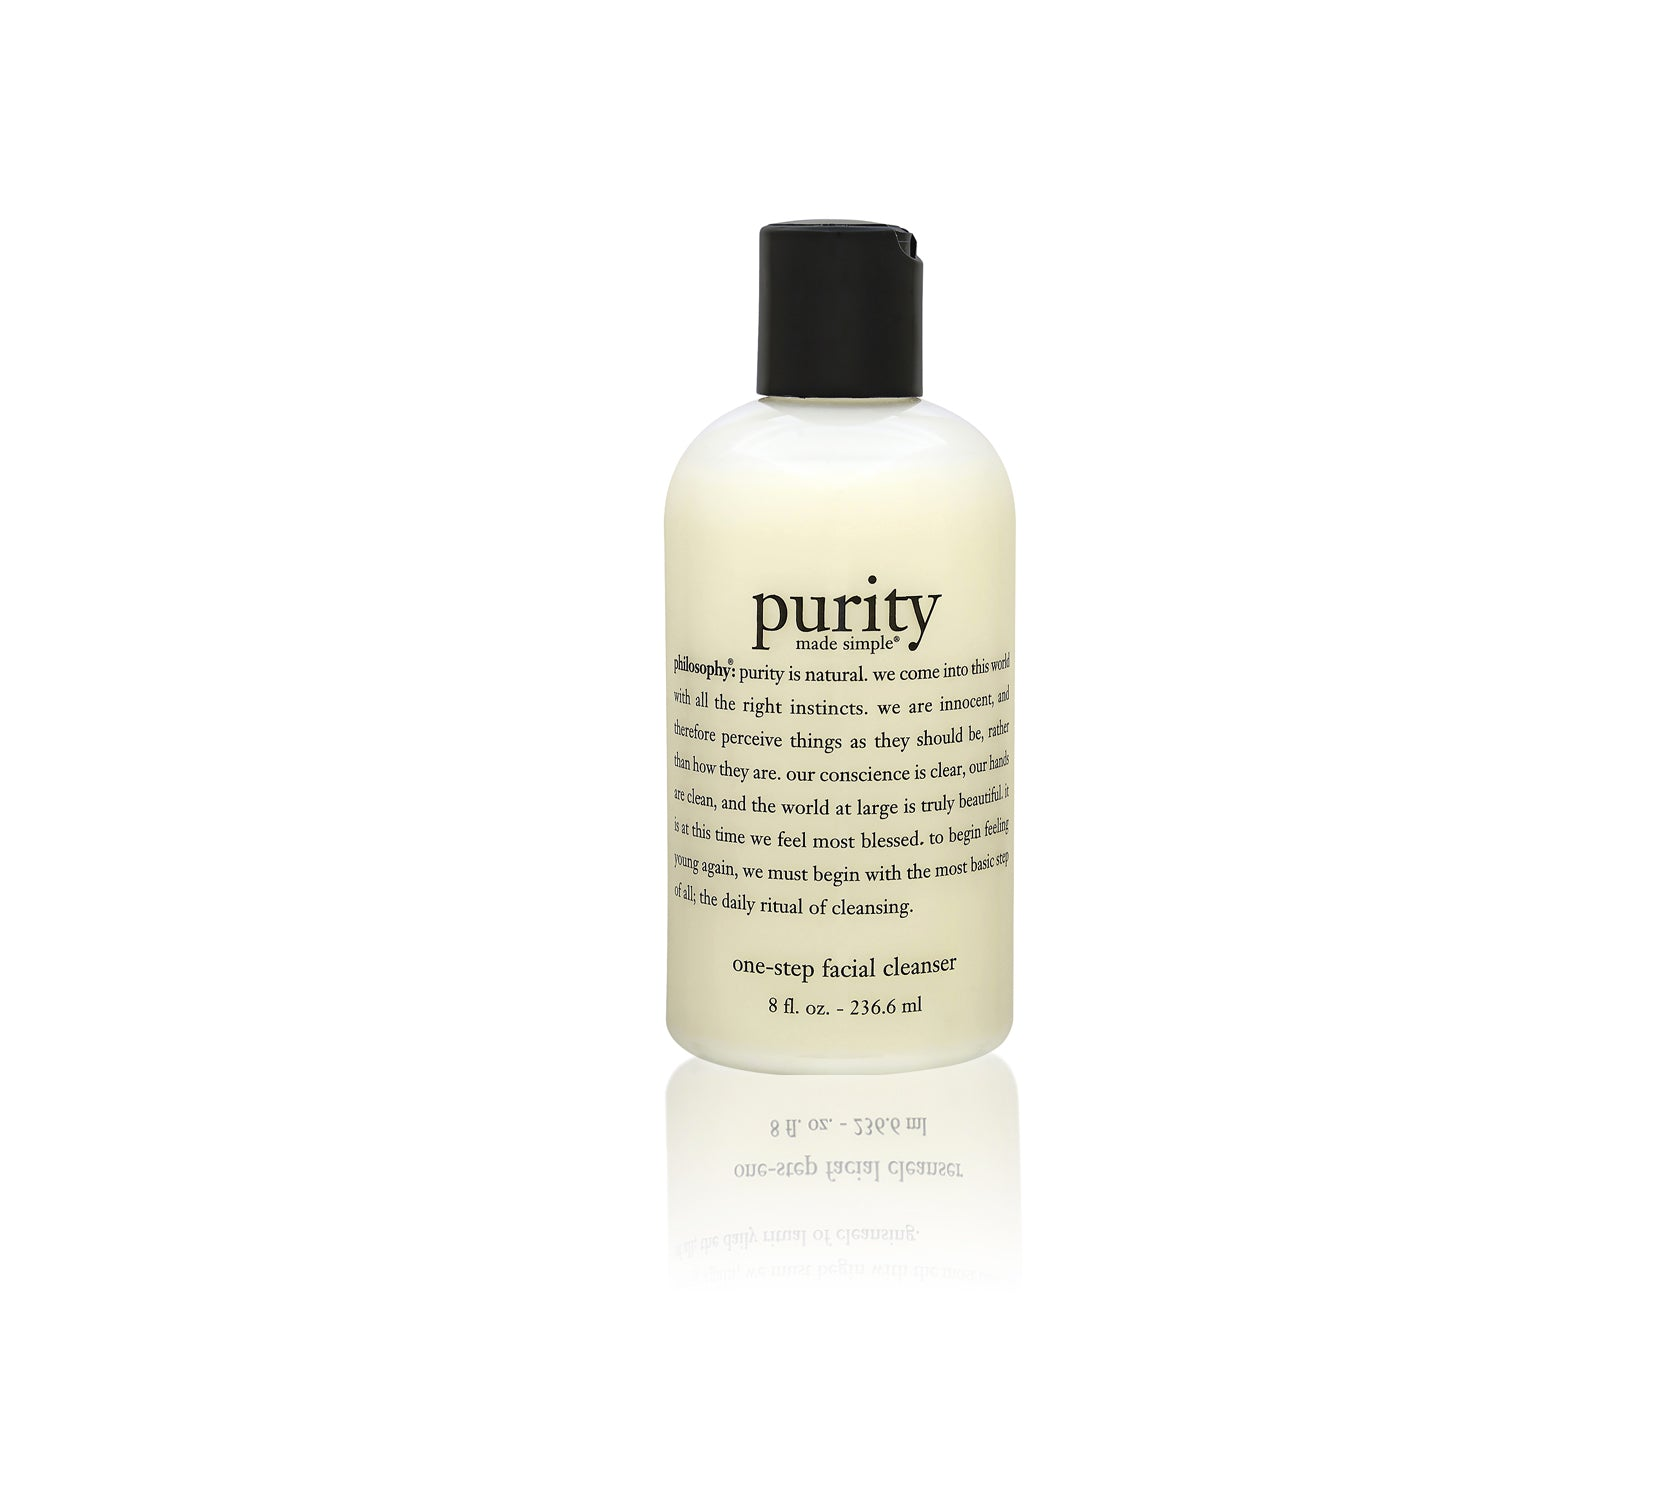 purity-made-simple-one-step-facial-cleanser